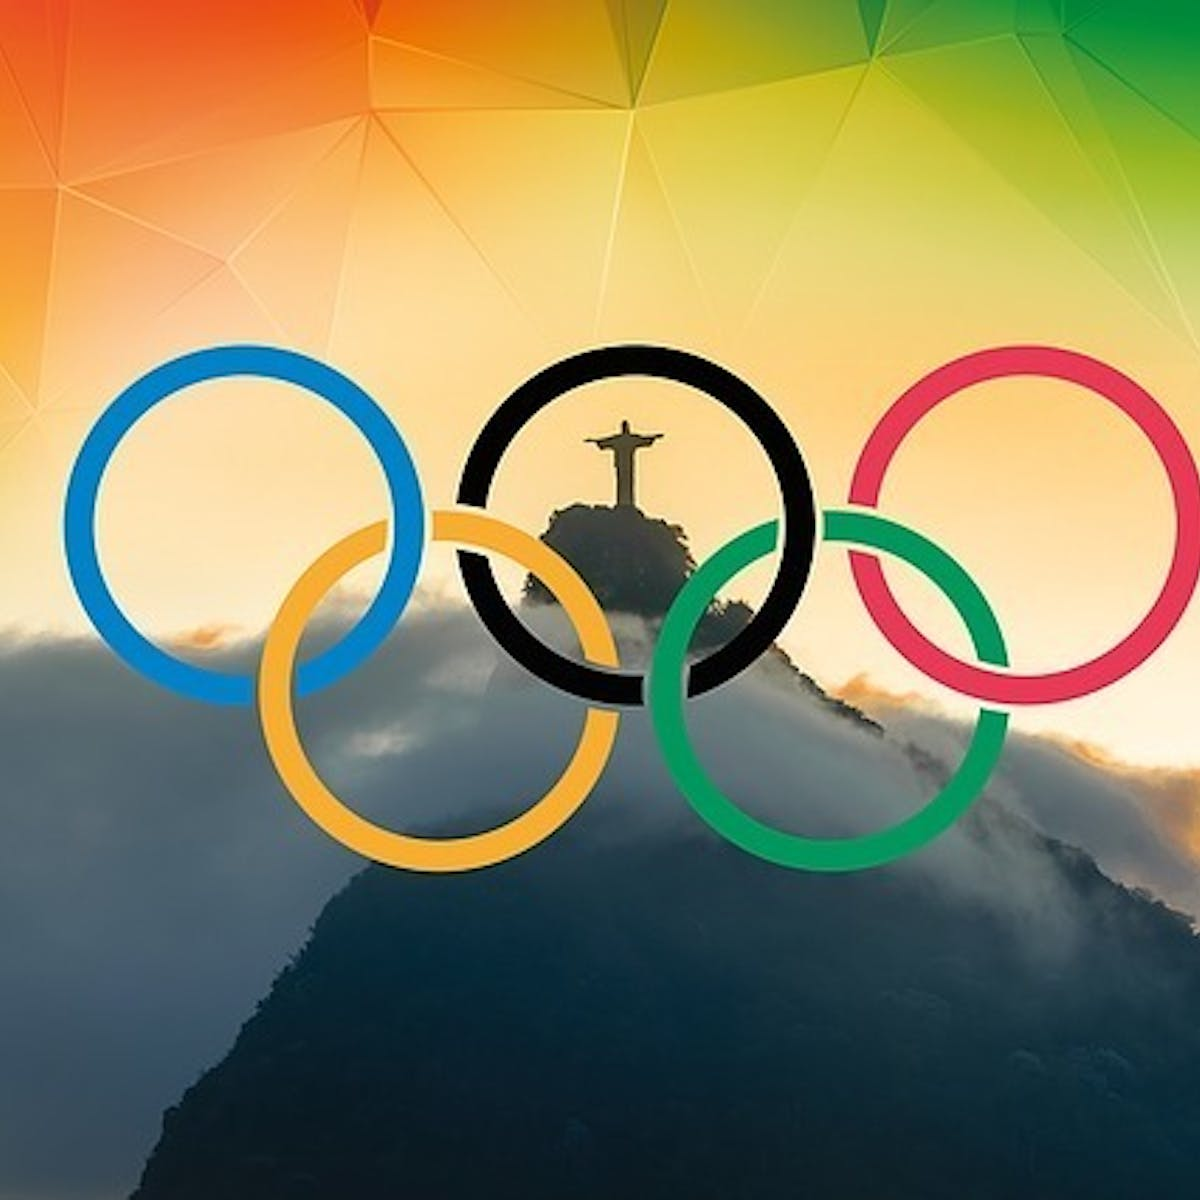 A Cord-Cutter's Guide to Watching the Olympics   Inverse